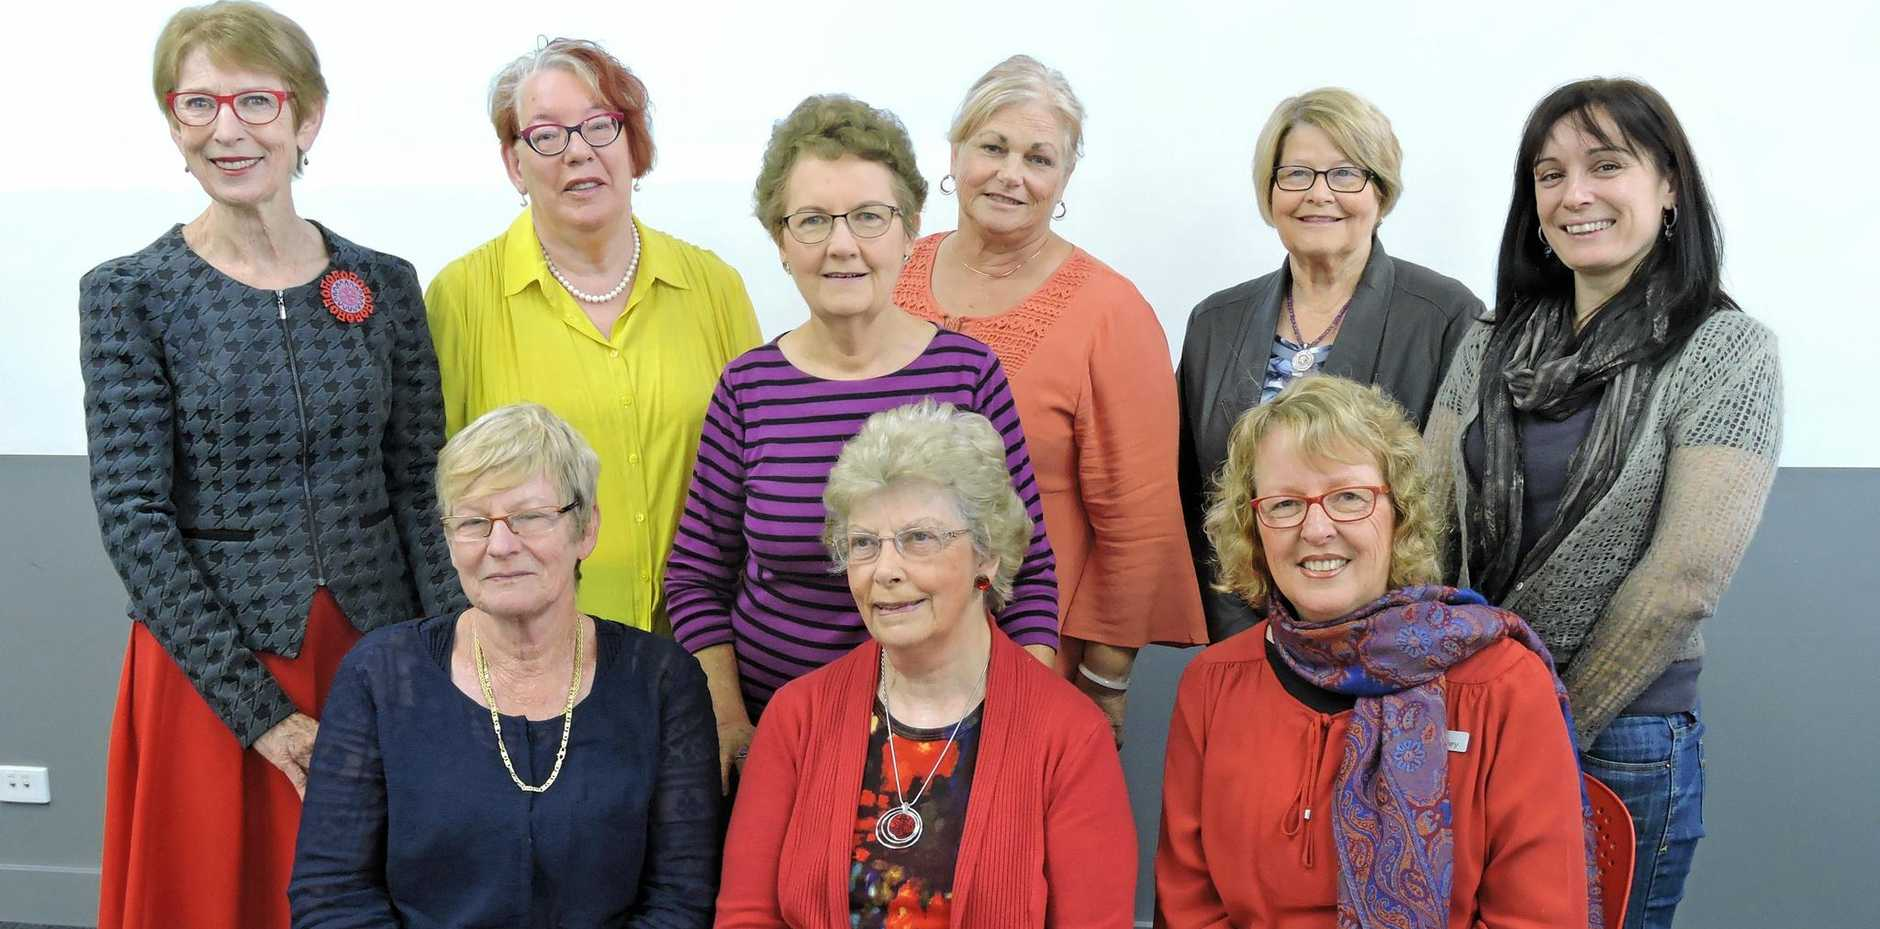 The Graduate Women Queensland (Sunshine Coast) committee is: (back row) Yvonne Koster, Margaret Welche, Bev Hinz (President), Judy Allinson, Jan Allan, Davinia Nieper, (front row) Joy Ryan, Bernice Anderson and Sylvia Hovey.